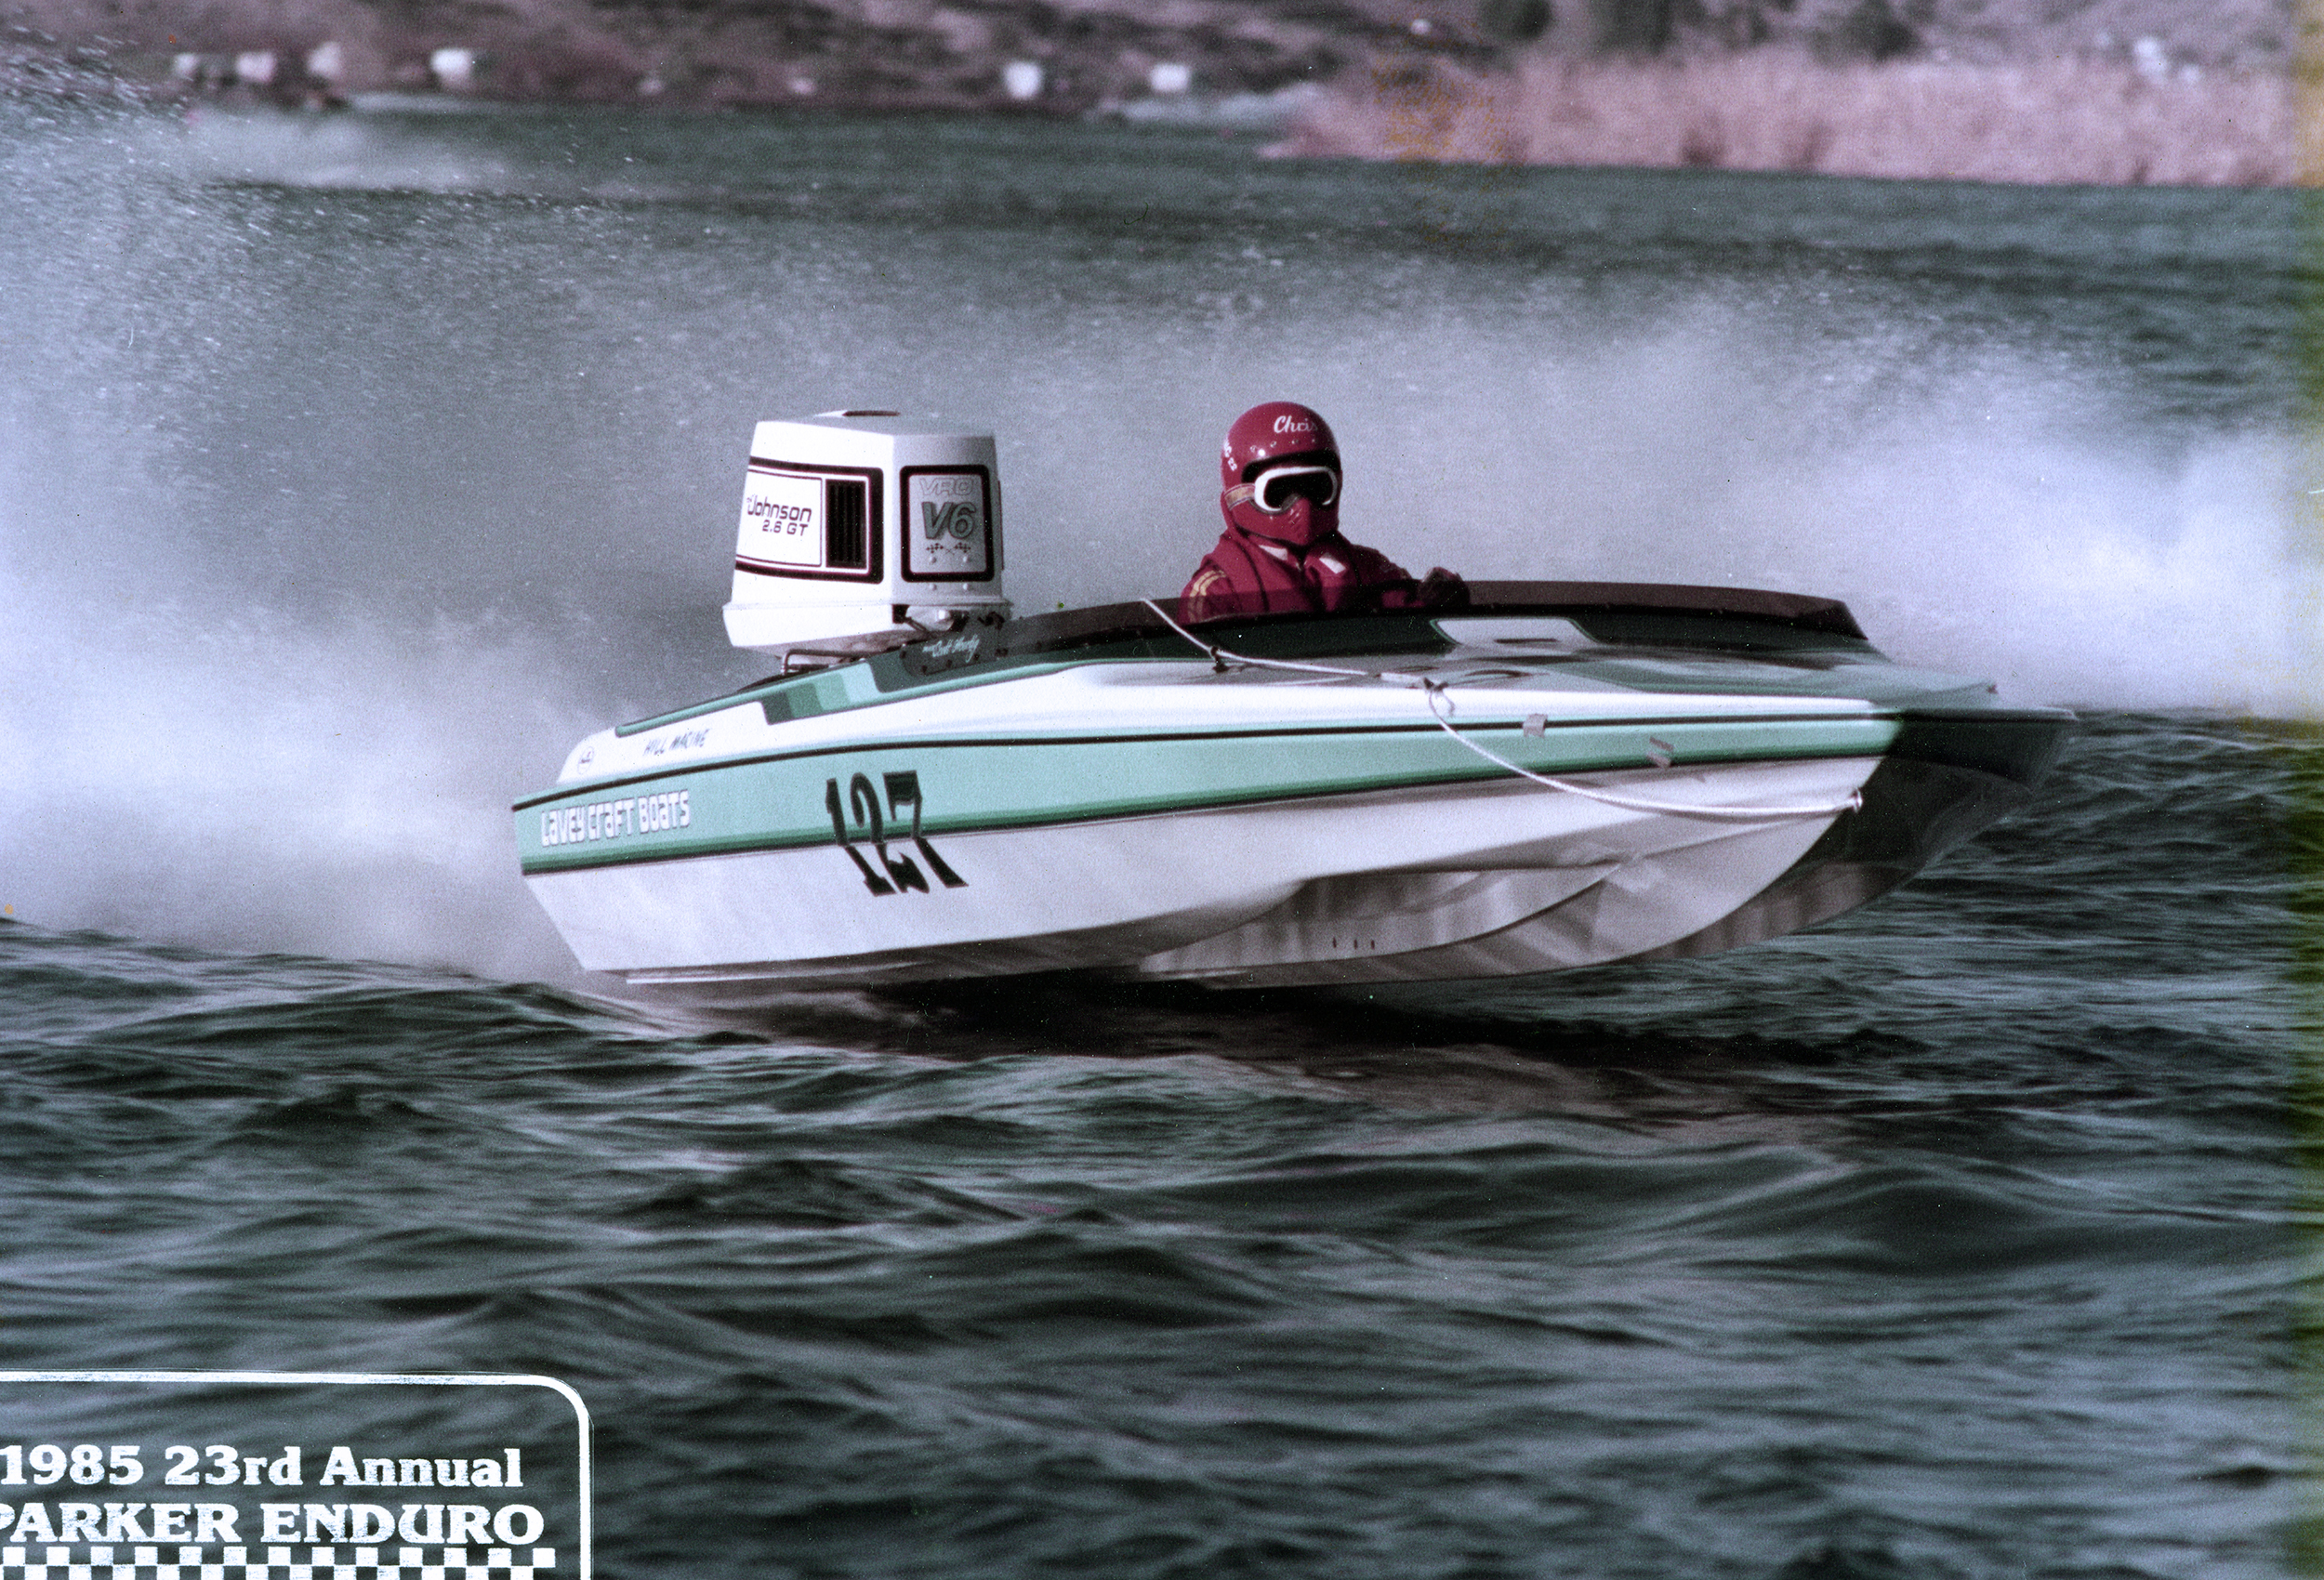 Racing legacy Lavey Craft - pic 6.jpg